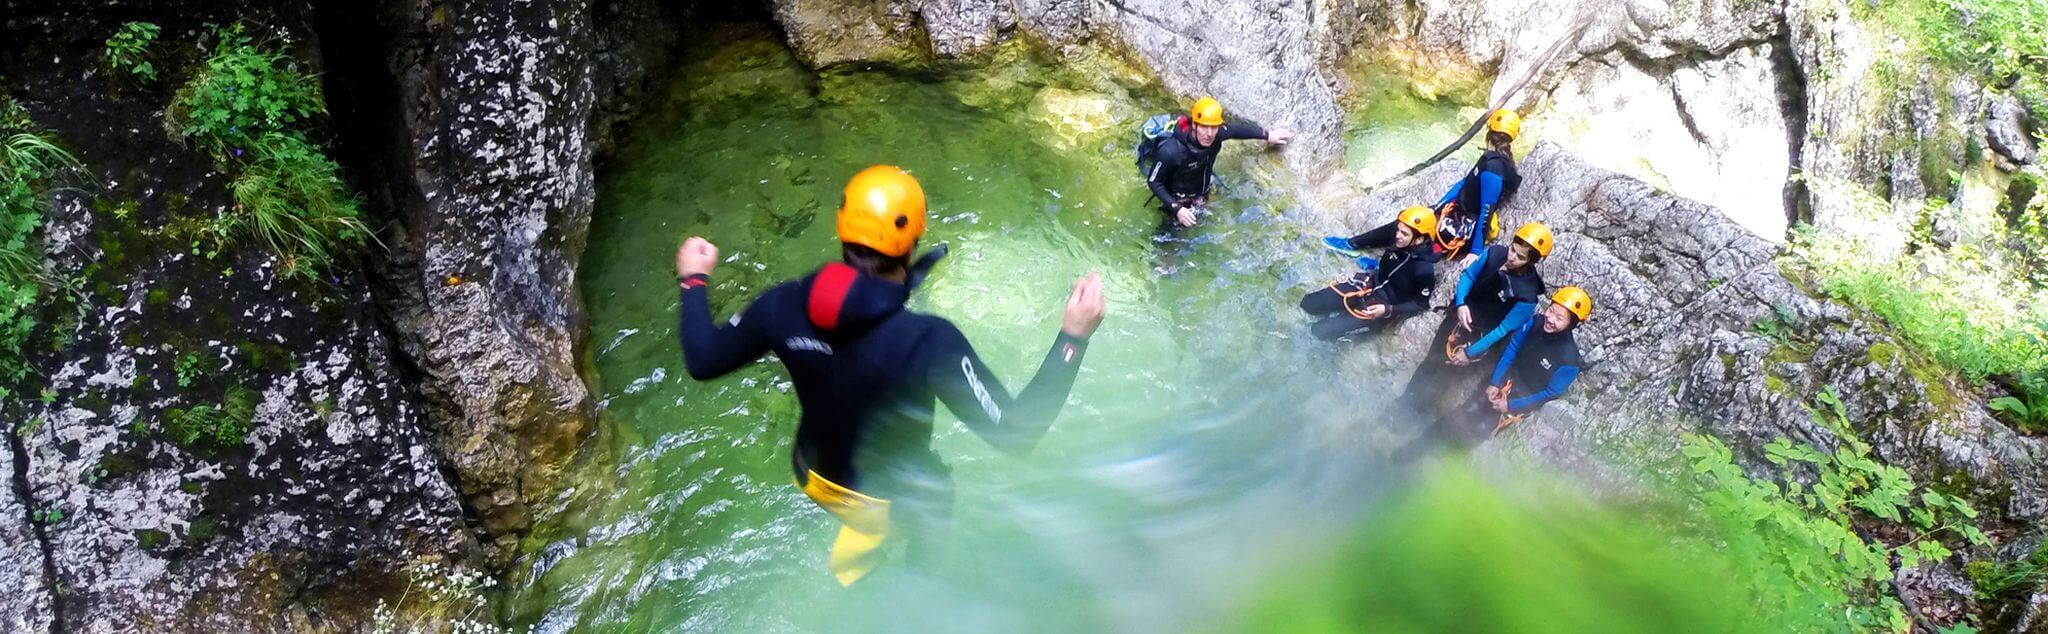 Canyoning in Estado México